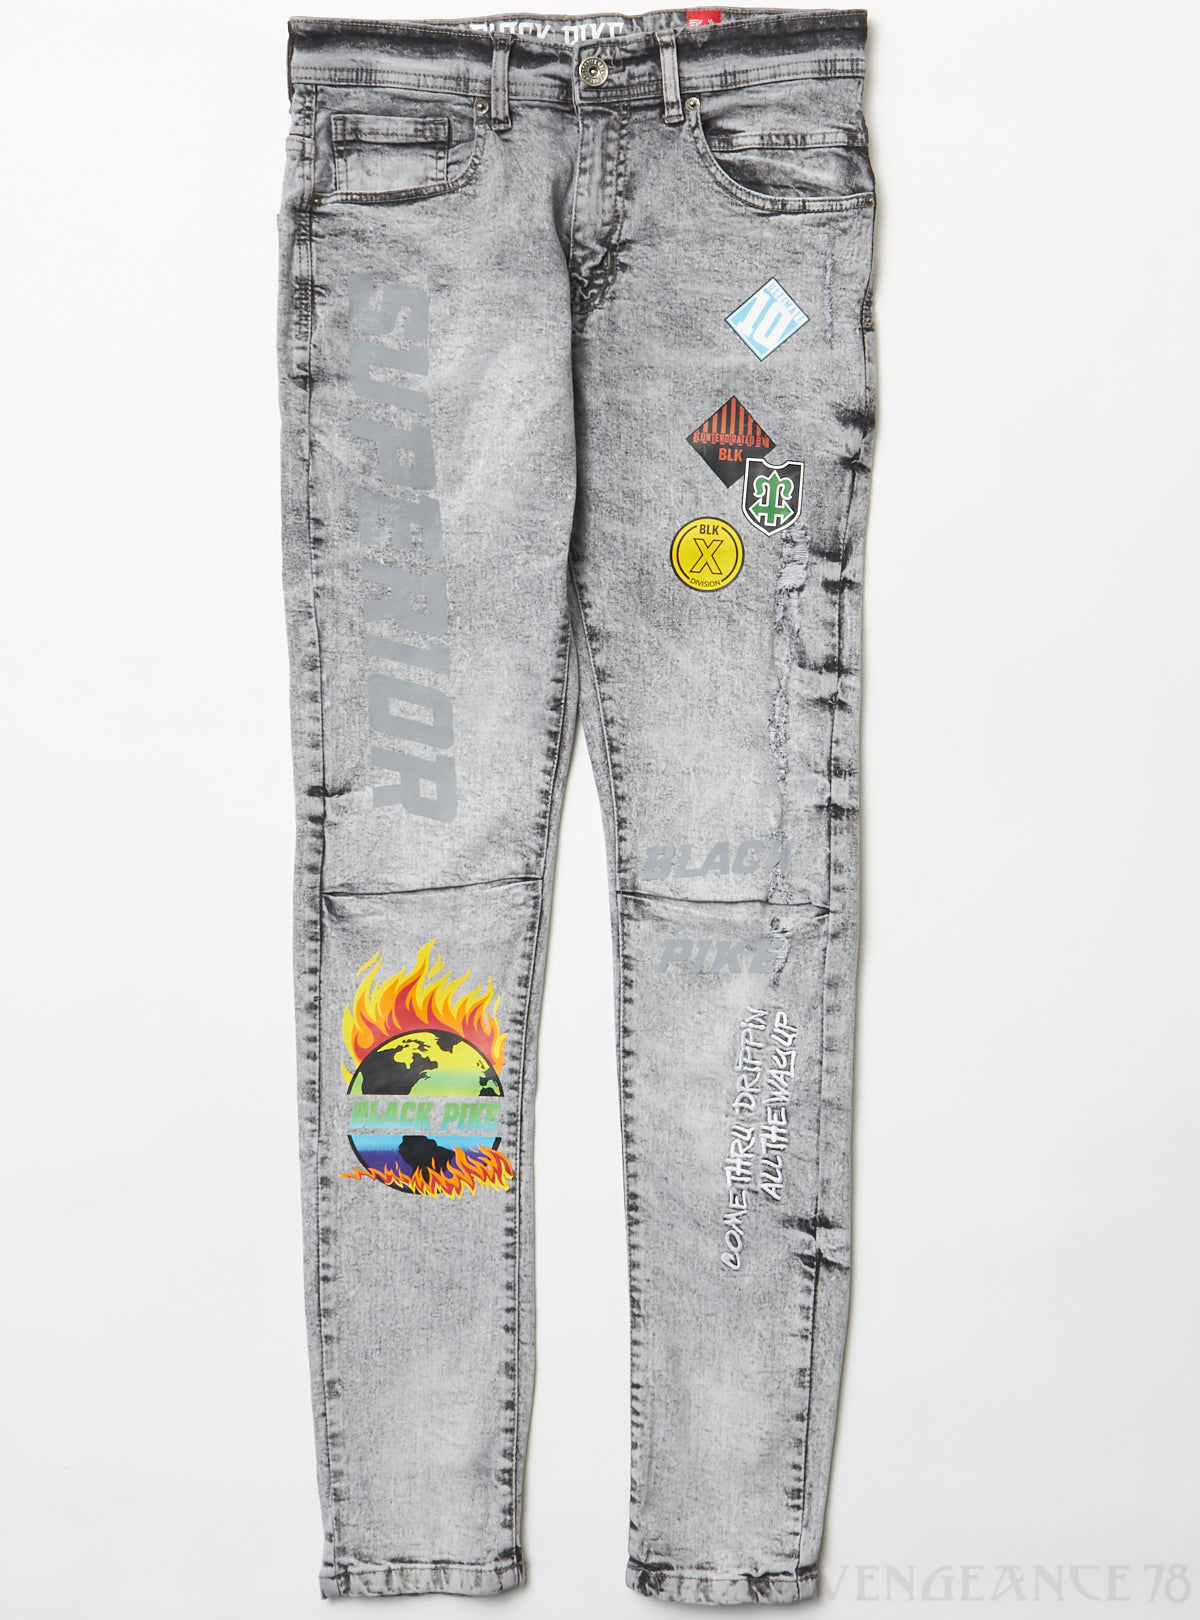 Black Pike Jeans - Reflection with Patches - Grey - BS0707